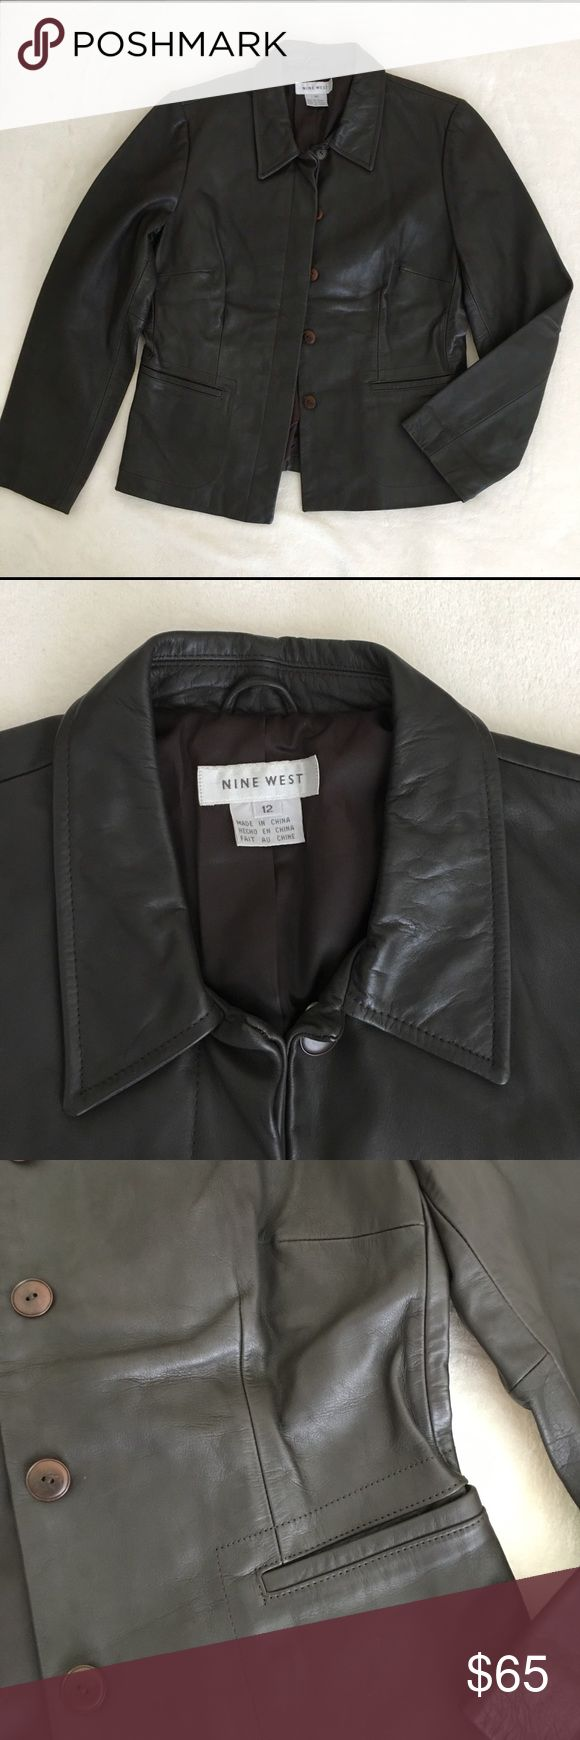 100% Real Leather Jacket by Nine West Dark brown leather jacket by Nine West. 100% genuine leather. Lined. Worn once. Excellent condition. Looks and feels brand new. Nine West Jackets & Coats Blazers